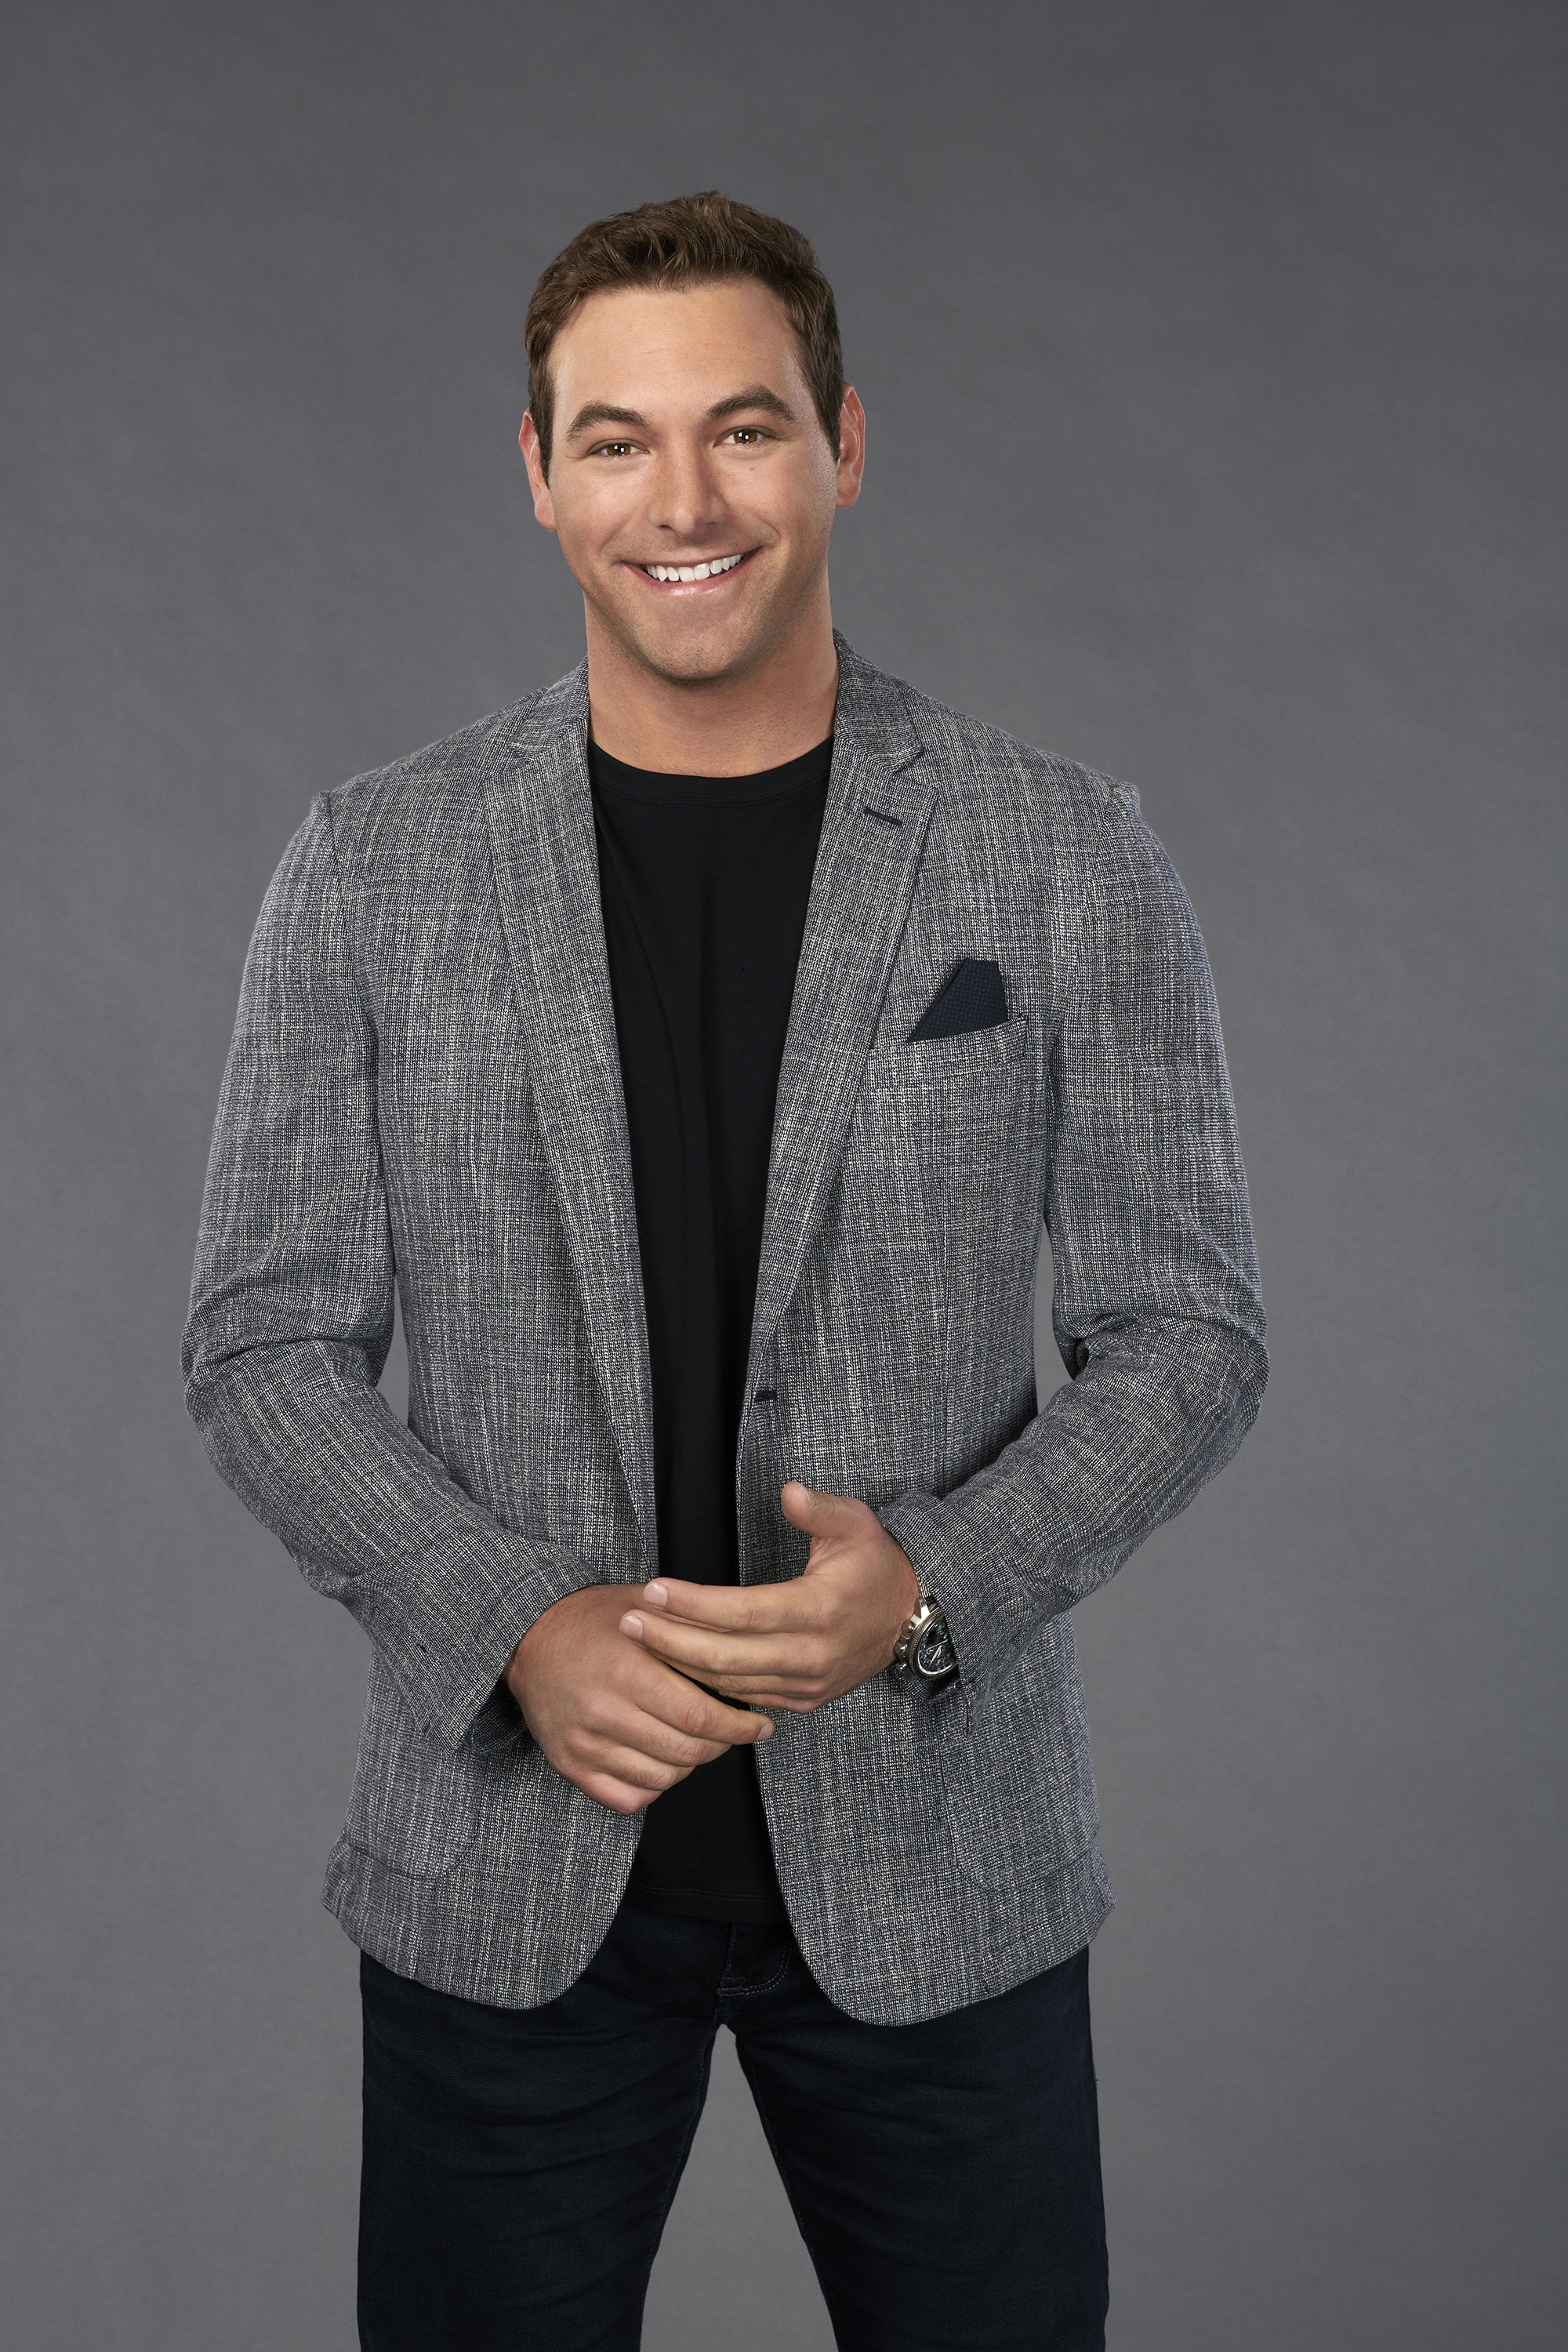 Bachelorette 15 - Chasen Coscia - *Sleuthing Spoilers* 4ec3b8ae-a6ed-4384-bc4f-0ed352d475a4